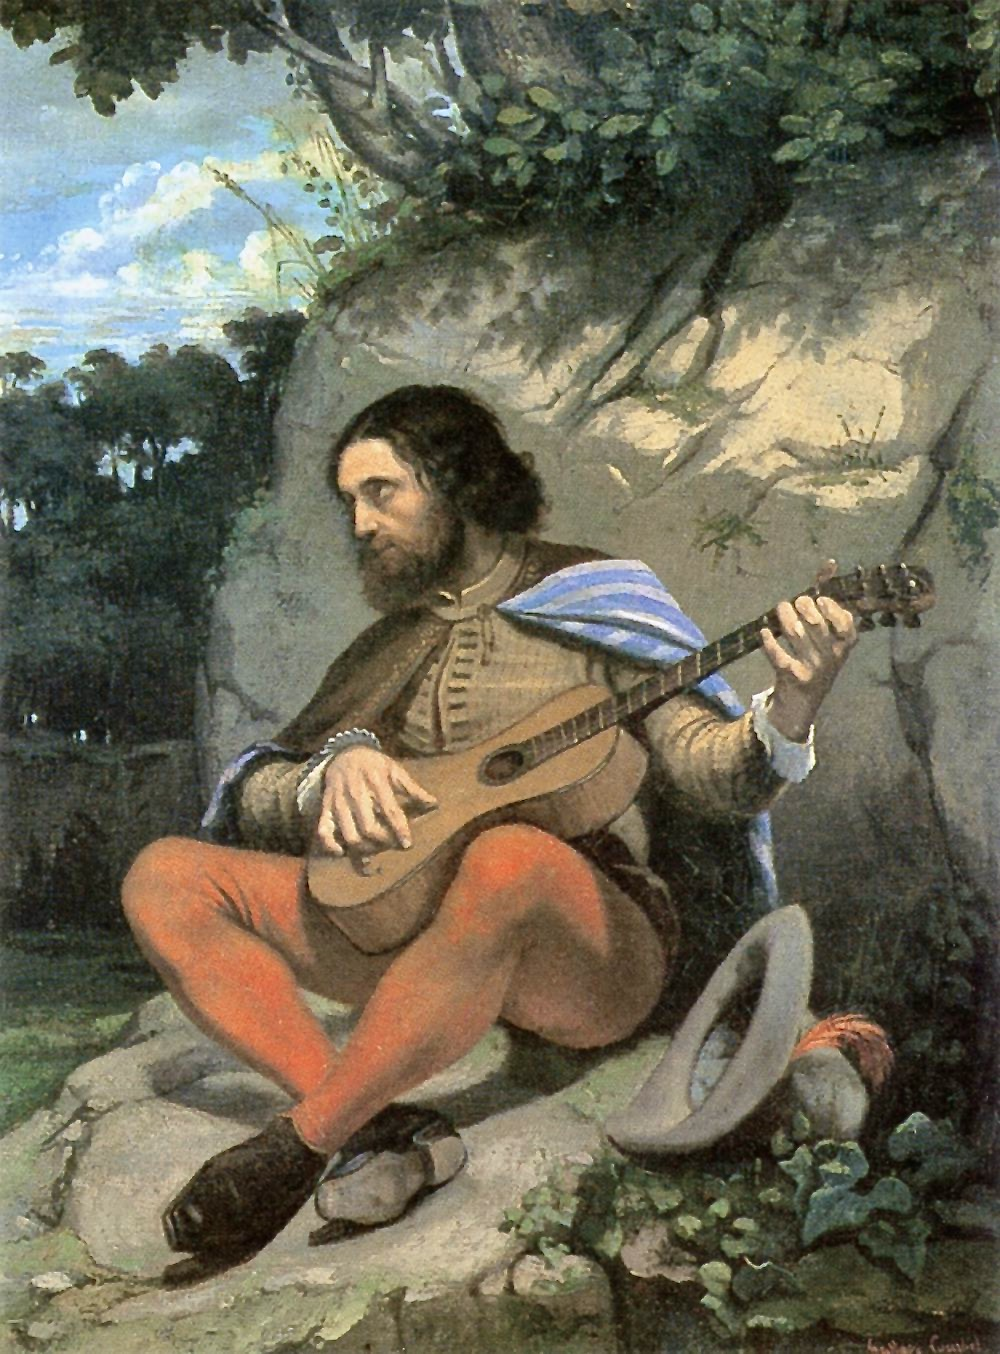 Gustave_Courbet_-_Young_Man_in_a_Landscape_(The_Guitarrero)_-_WGA5482